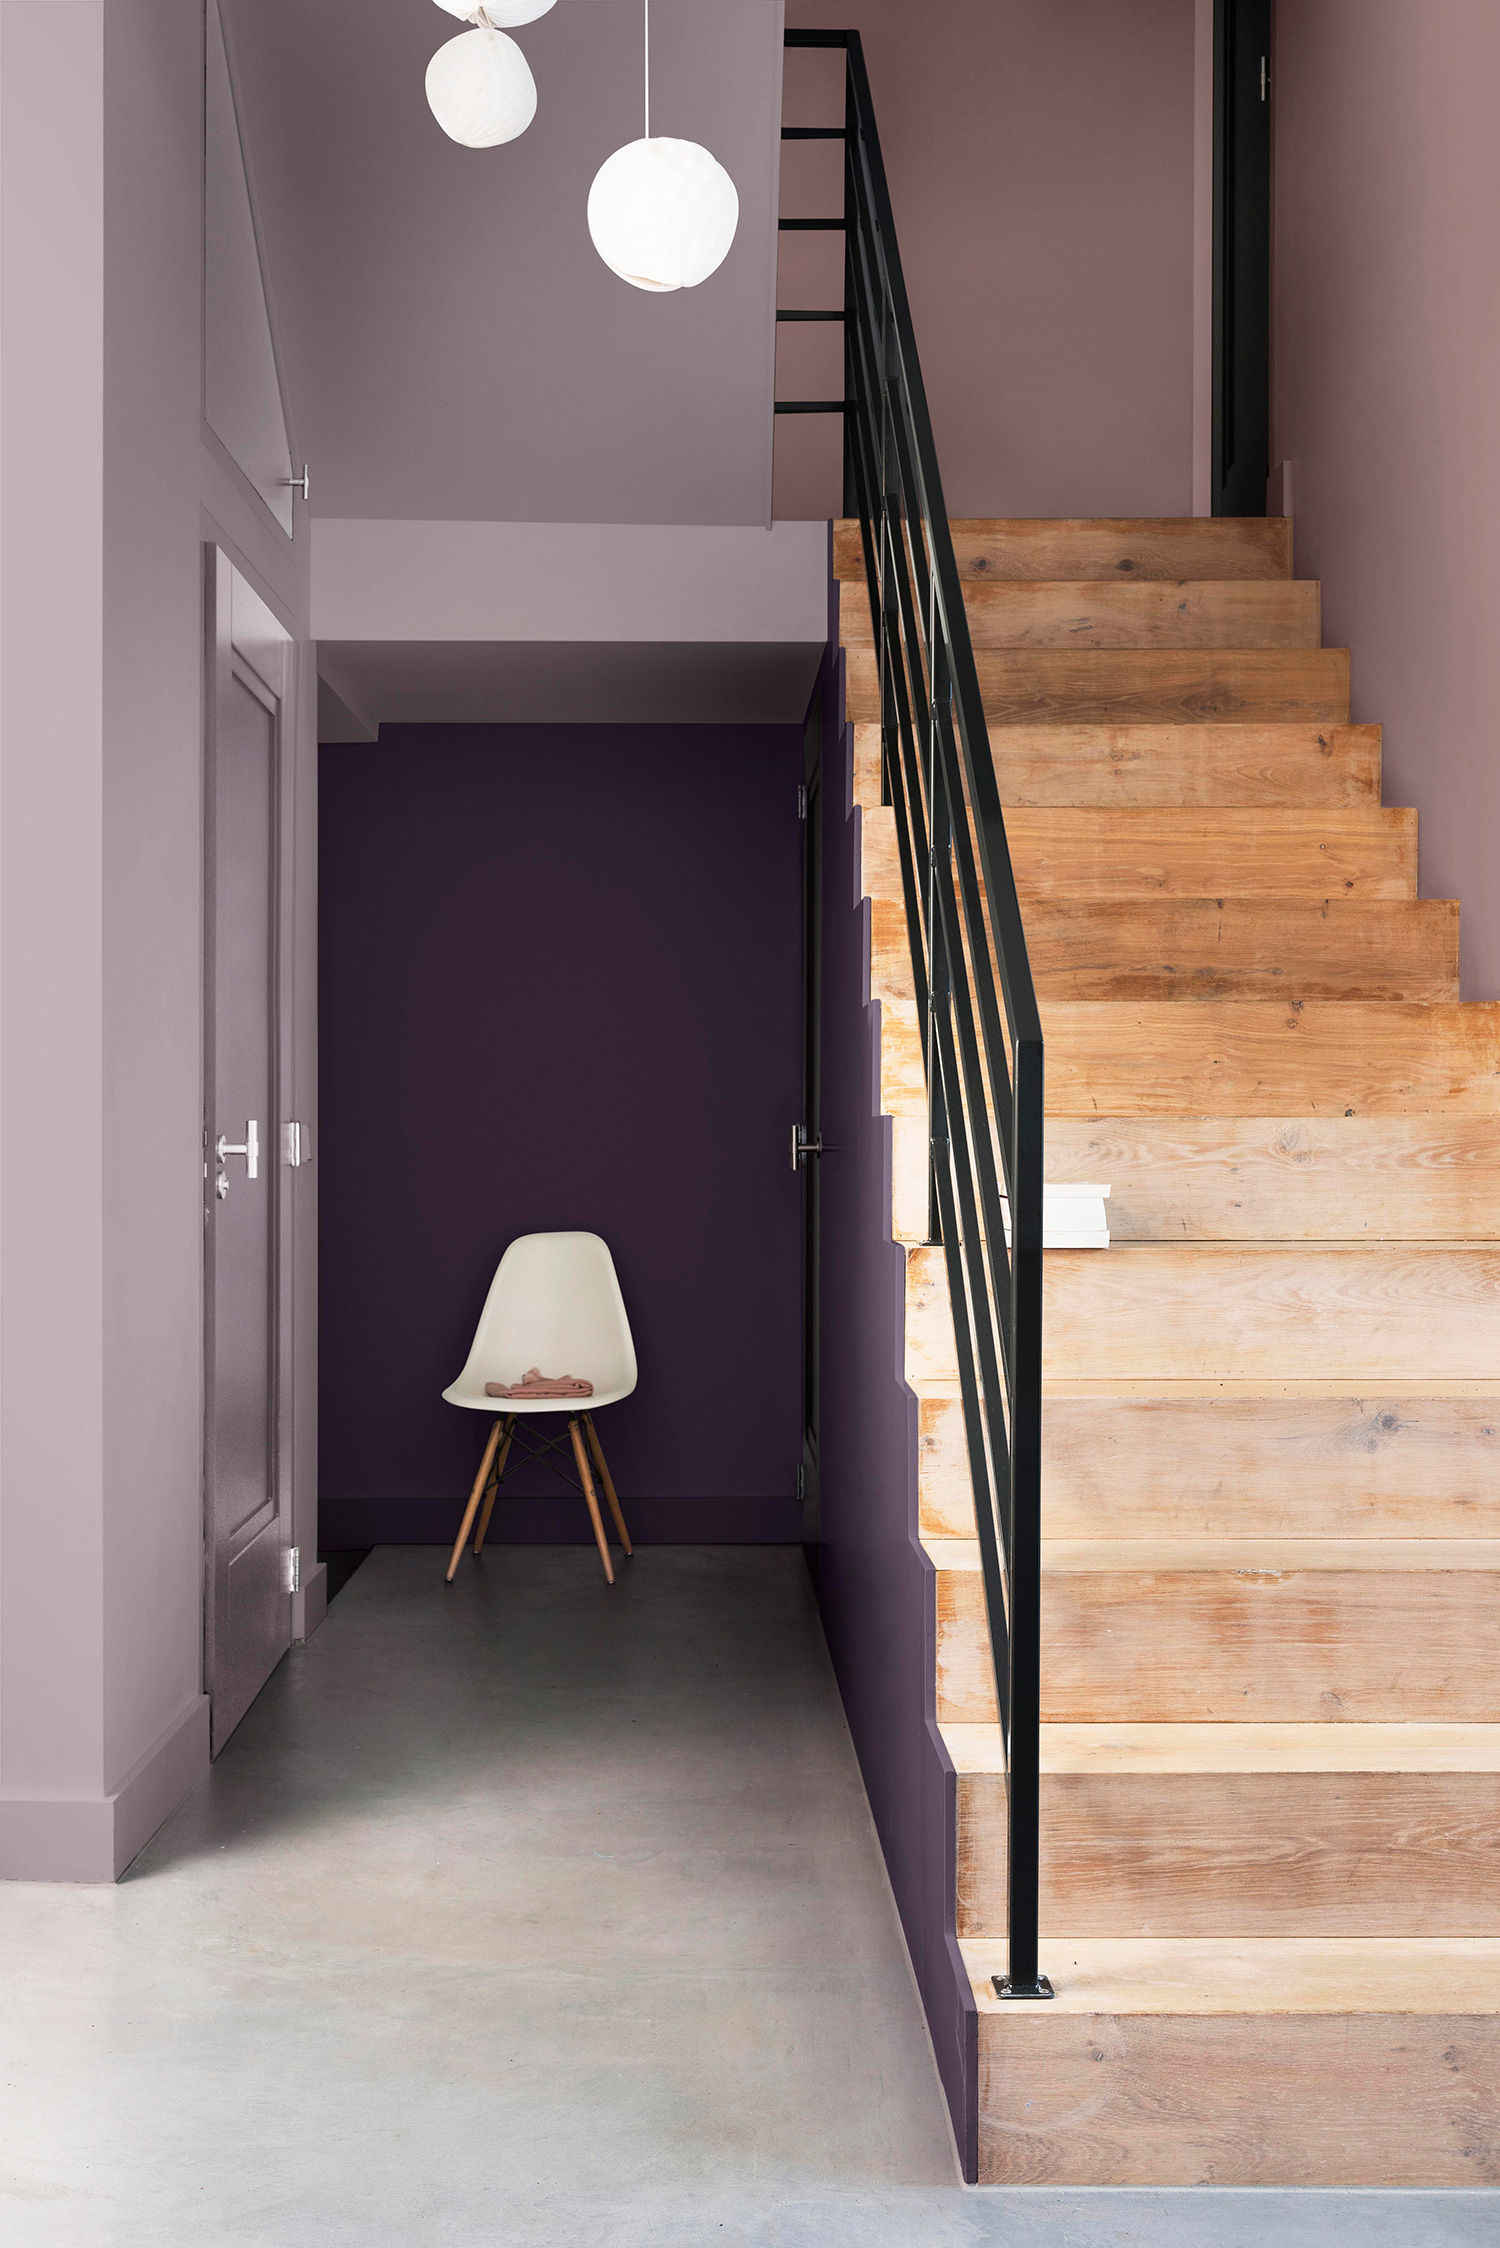 """2. Dulux - Heart Wood - Dulux's much-anticipated Colour of the Year often sets the benchmark for paint trends, and the brand's latest tonal offering for 2018 is no different. An unexpected mix of delicate and earthy, Heart Wood has been revealed as next year's go-to paint shade for adorning our walls and surfaces. Described as """"bringing balance and versatility"""" to interior environments, Dulux's Colour of the Year is evocative of natural textures such as leather and wood, combined with the delicacy of softer shades including cocoa and heather. We'll be teaming Heart Wood with rich navy tones and splashes of gold to give the palette a feel of lived-in luxury.Dulux Paint Mixing Easycare Washable & Tough Matt, from £31.49 for 2.5Lwww.dulux.co.uk"""